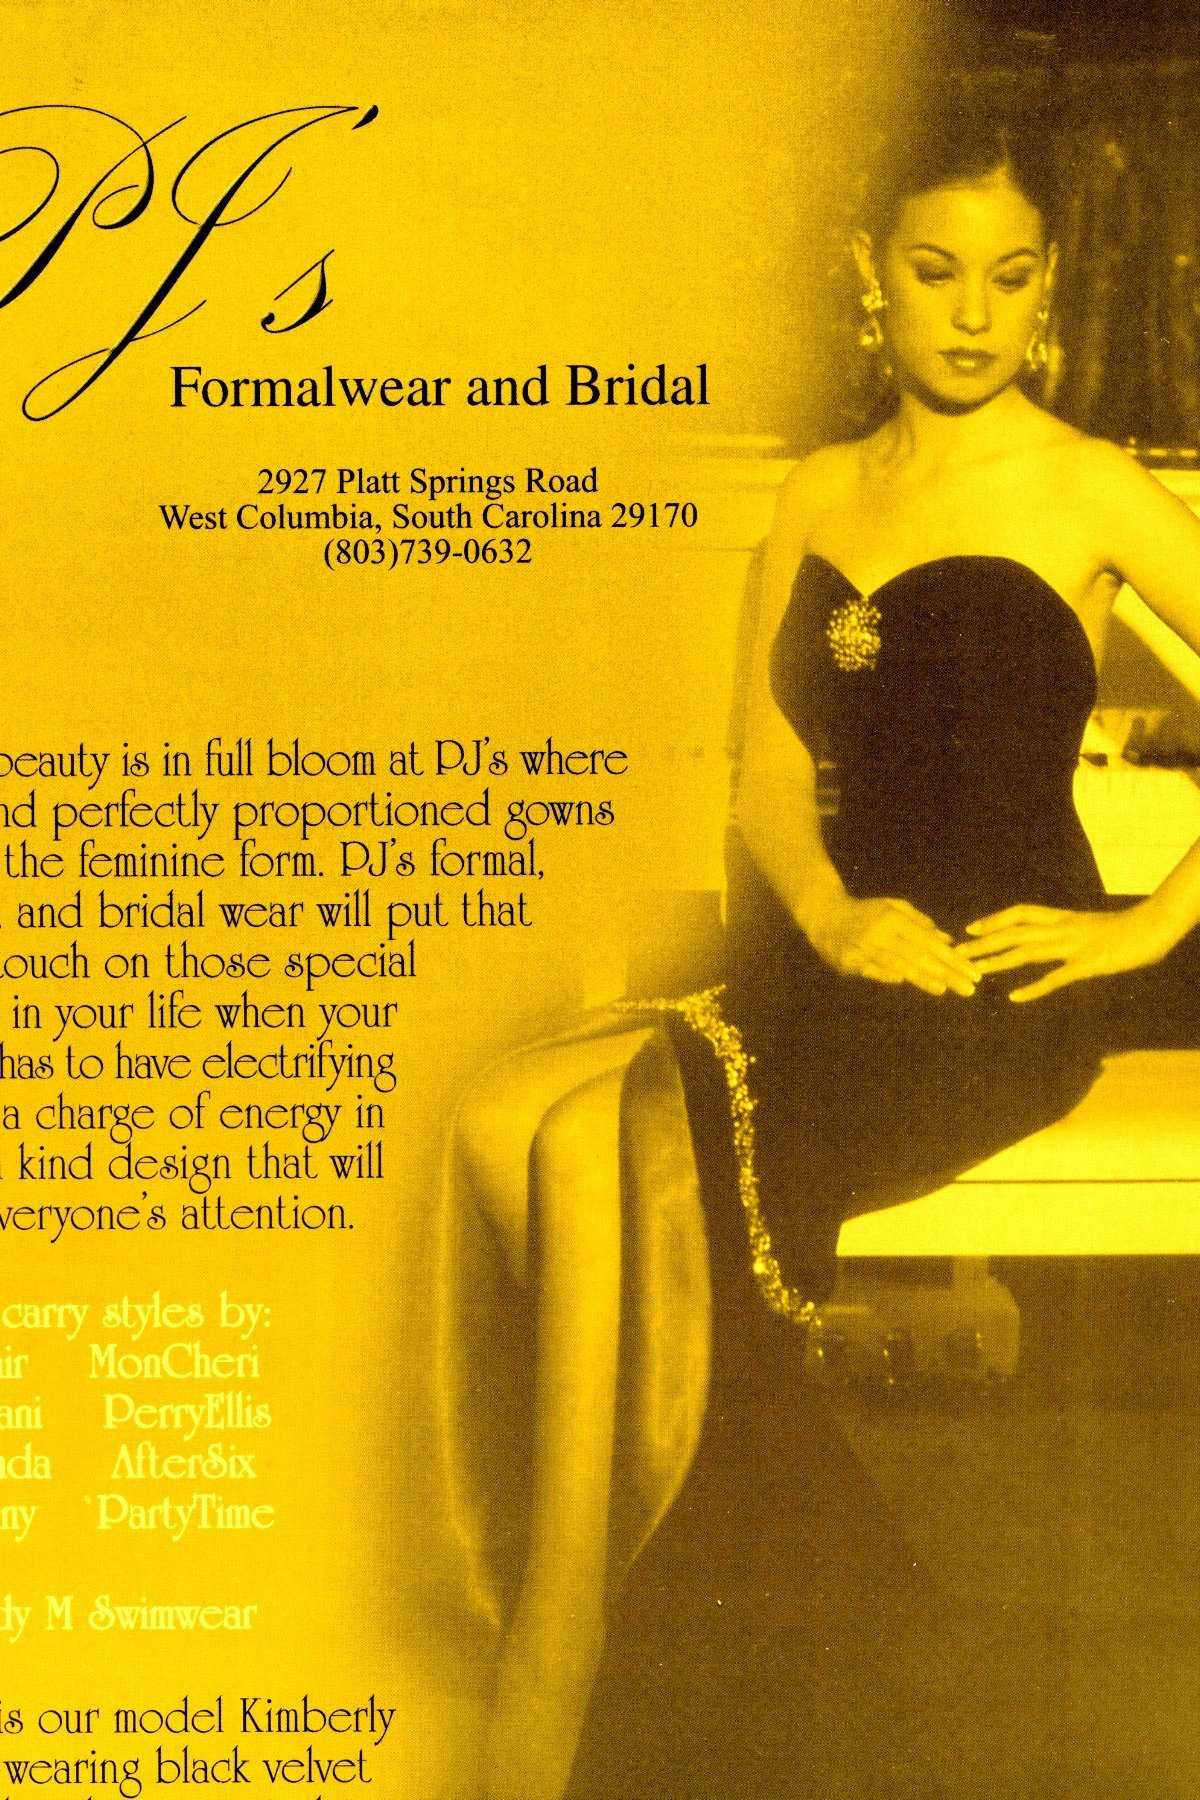 KIMBERLY is featured in an ad campaign for PJ'S formal and bridal.